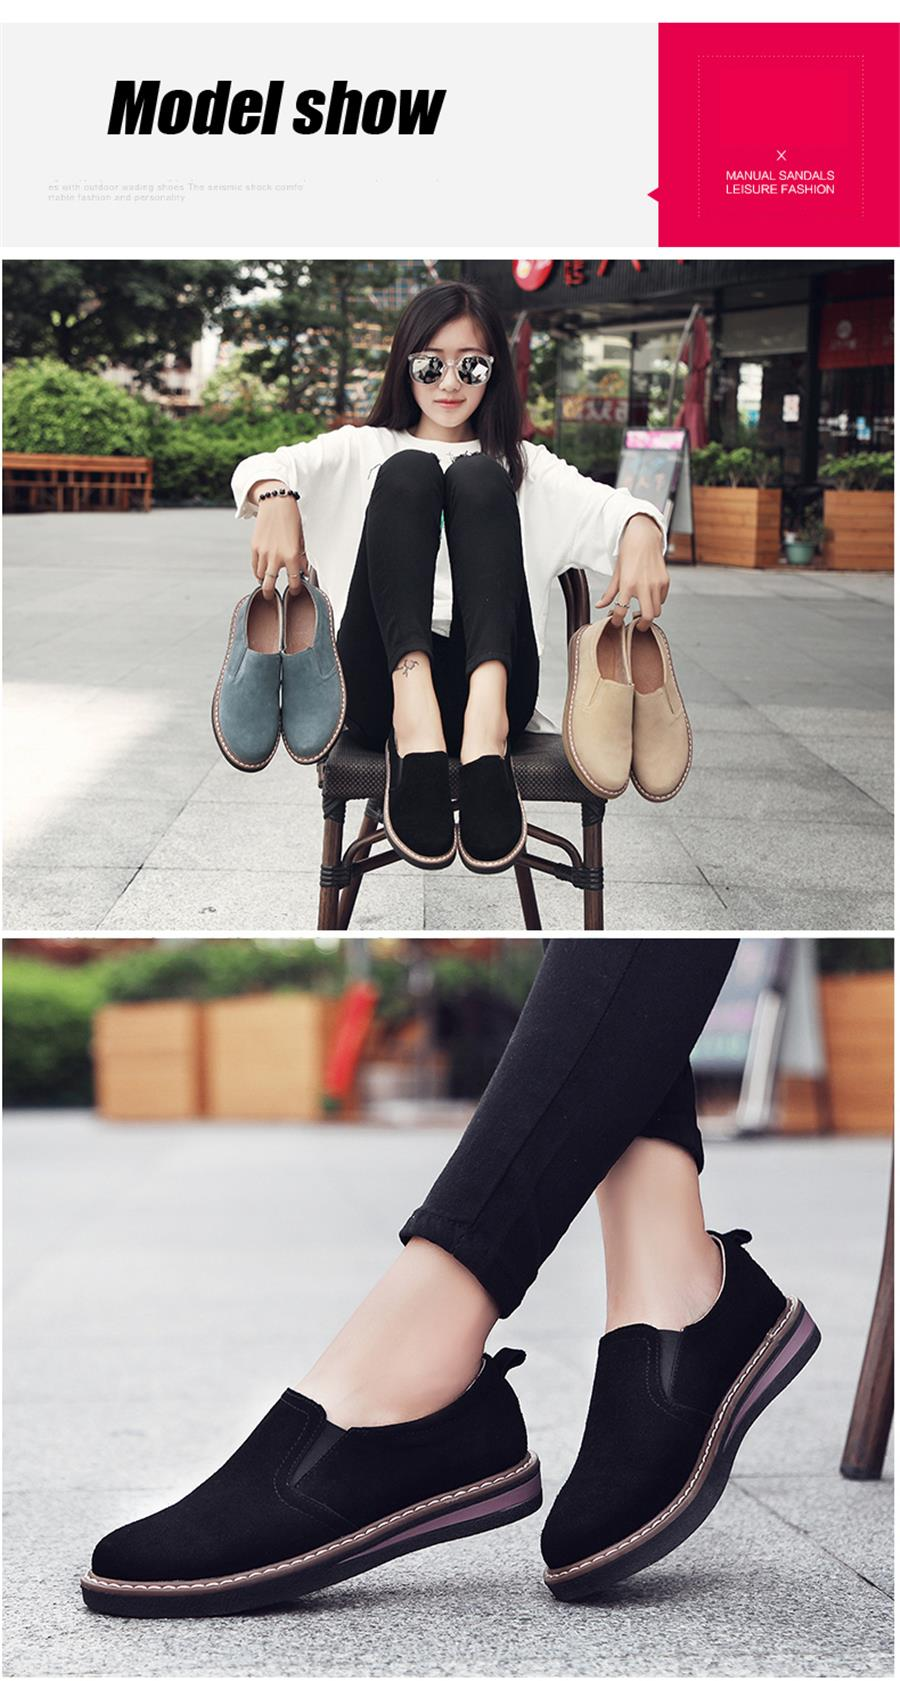 STS BRAND 2019 New Spring Women Flats Sneakers Suede Leather Round Toe Shoes Casual Shoes Women Slip On Flat Loafers Fazz Oxford (24)